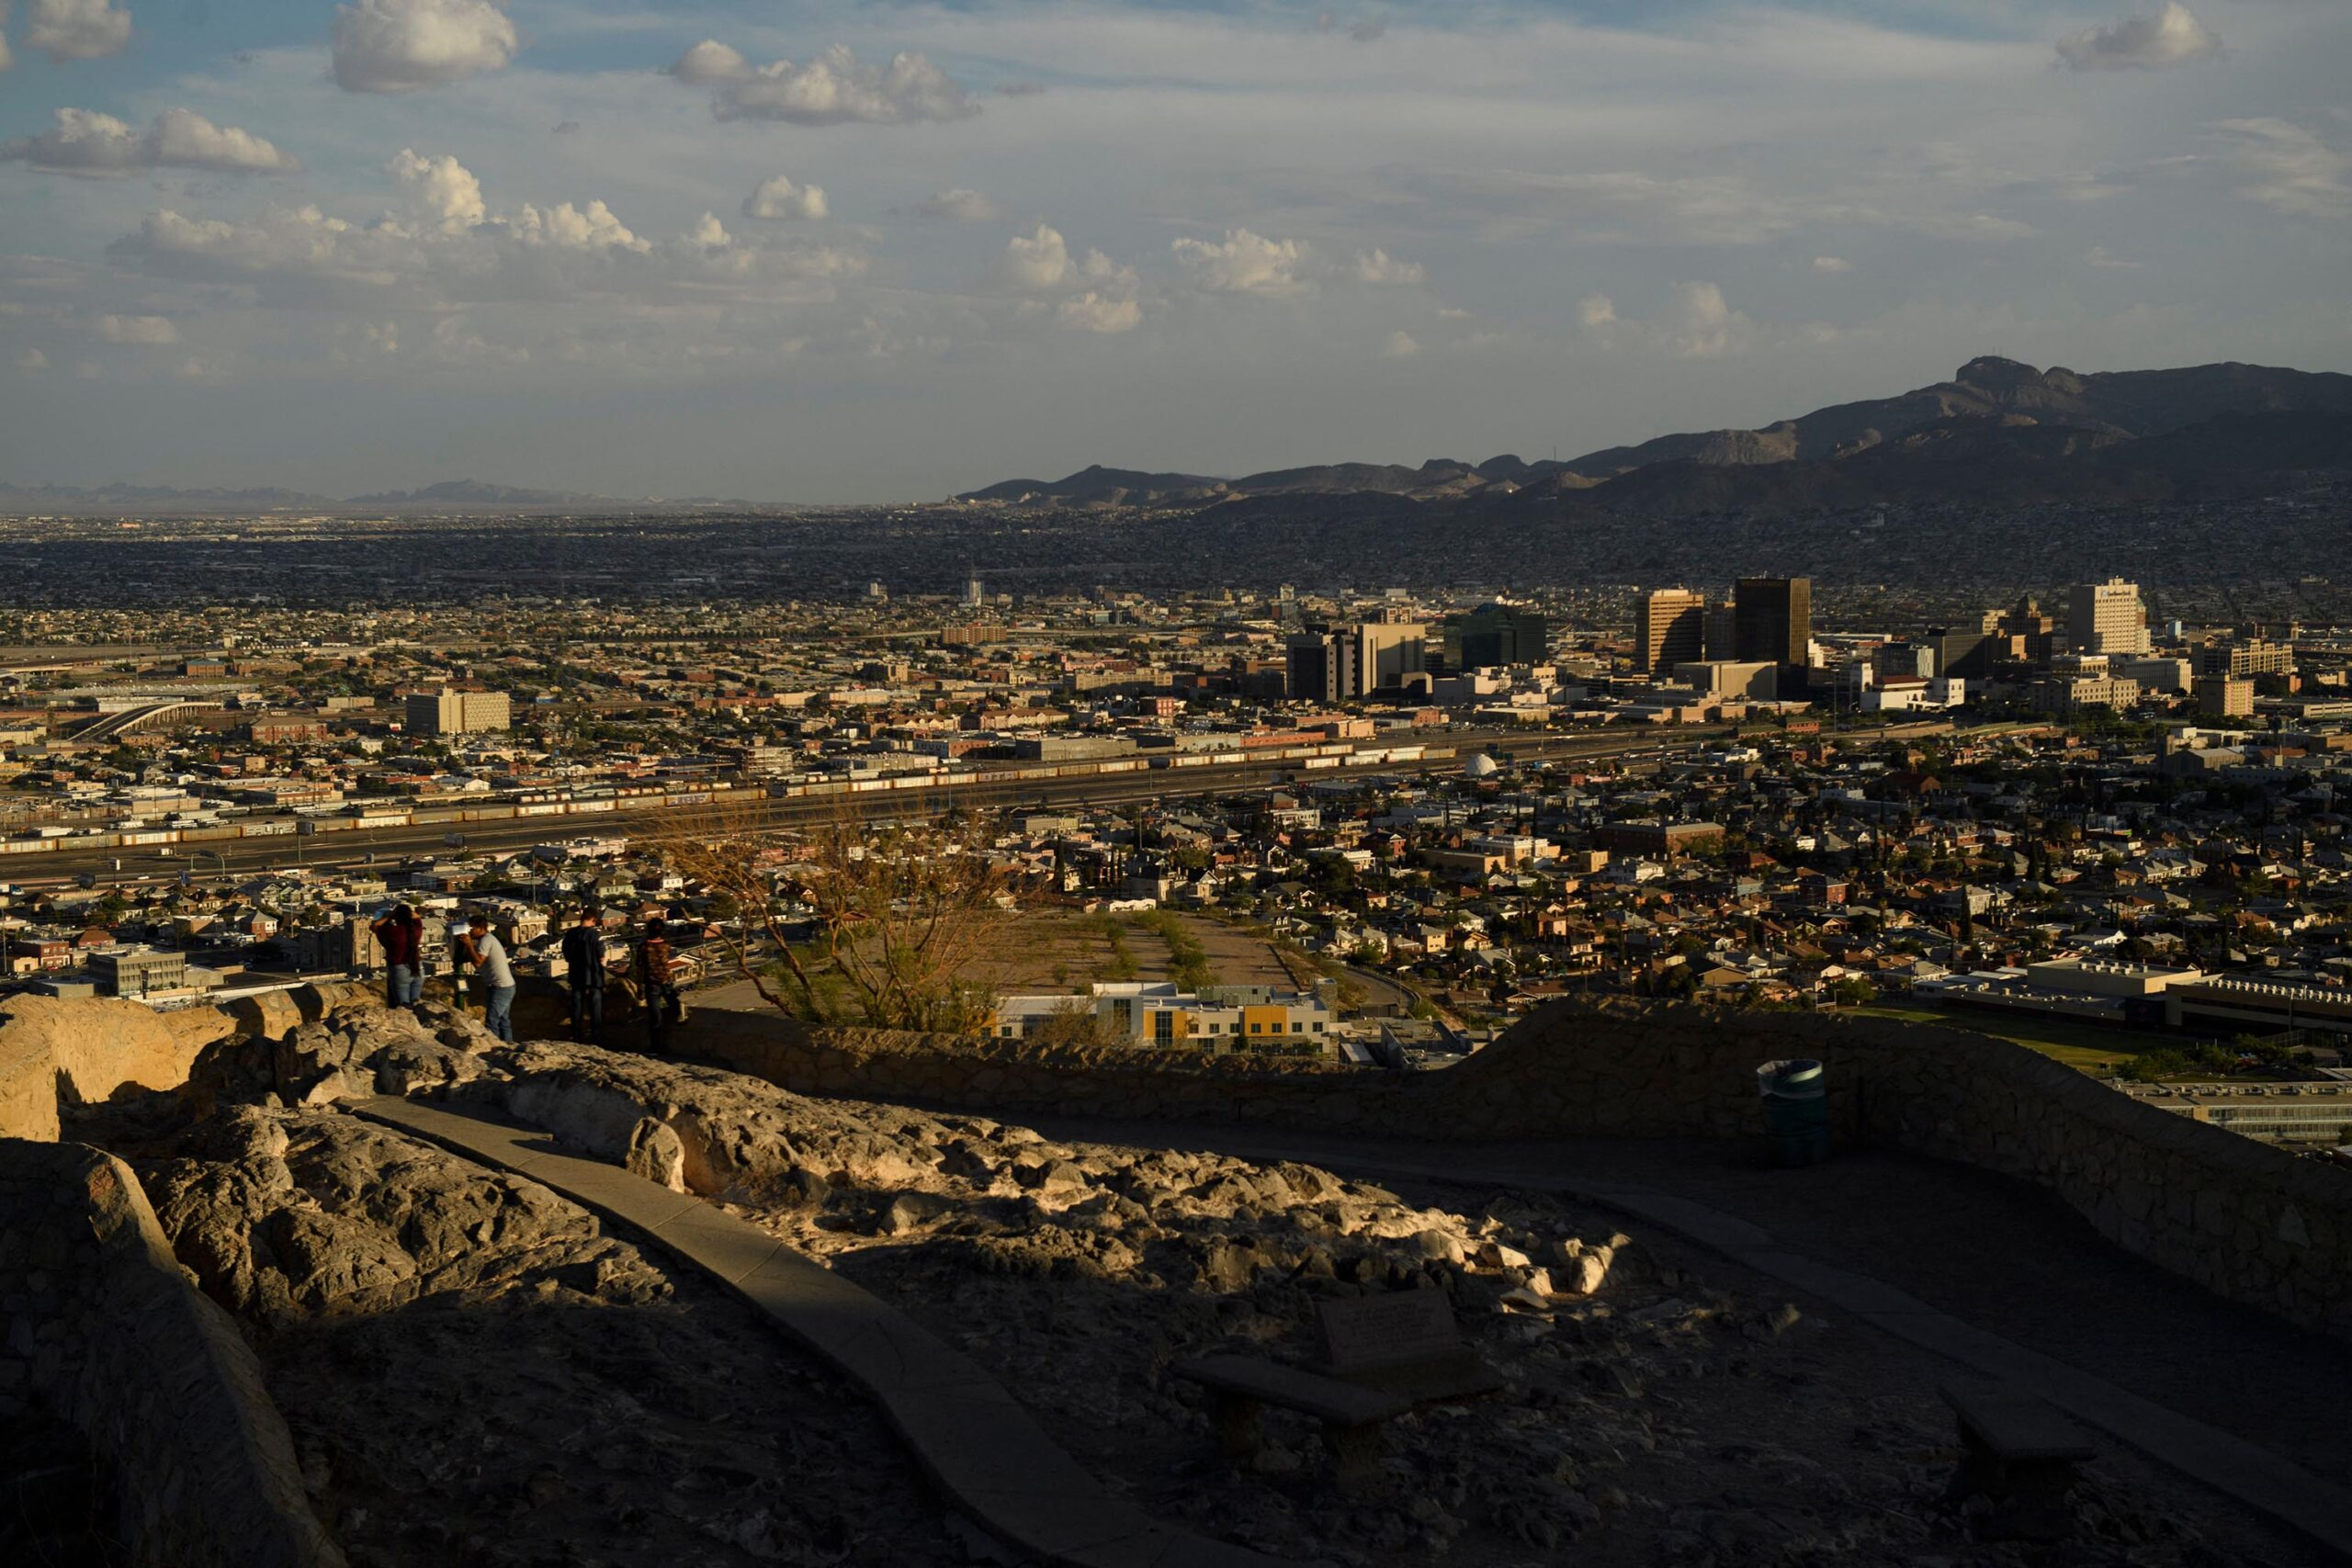 People look towards the downtown El Paso and the US-Mexico border separating El Paso and Ciudad Juarez from Murchison Rogers Park along Scenic Drive at sunset.